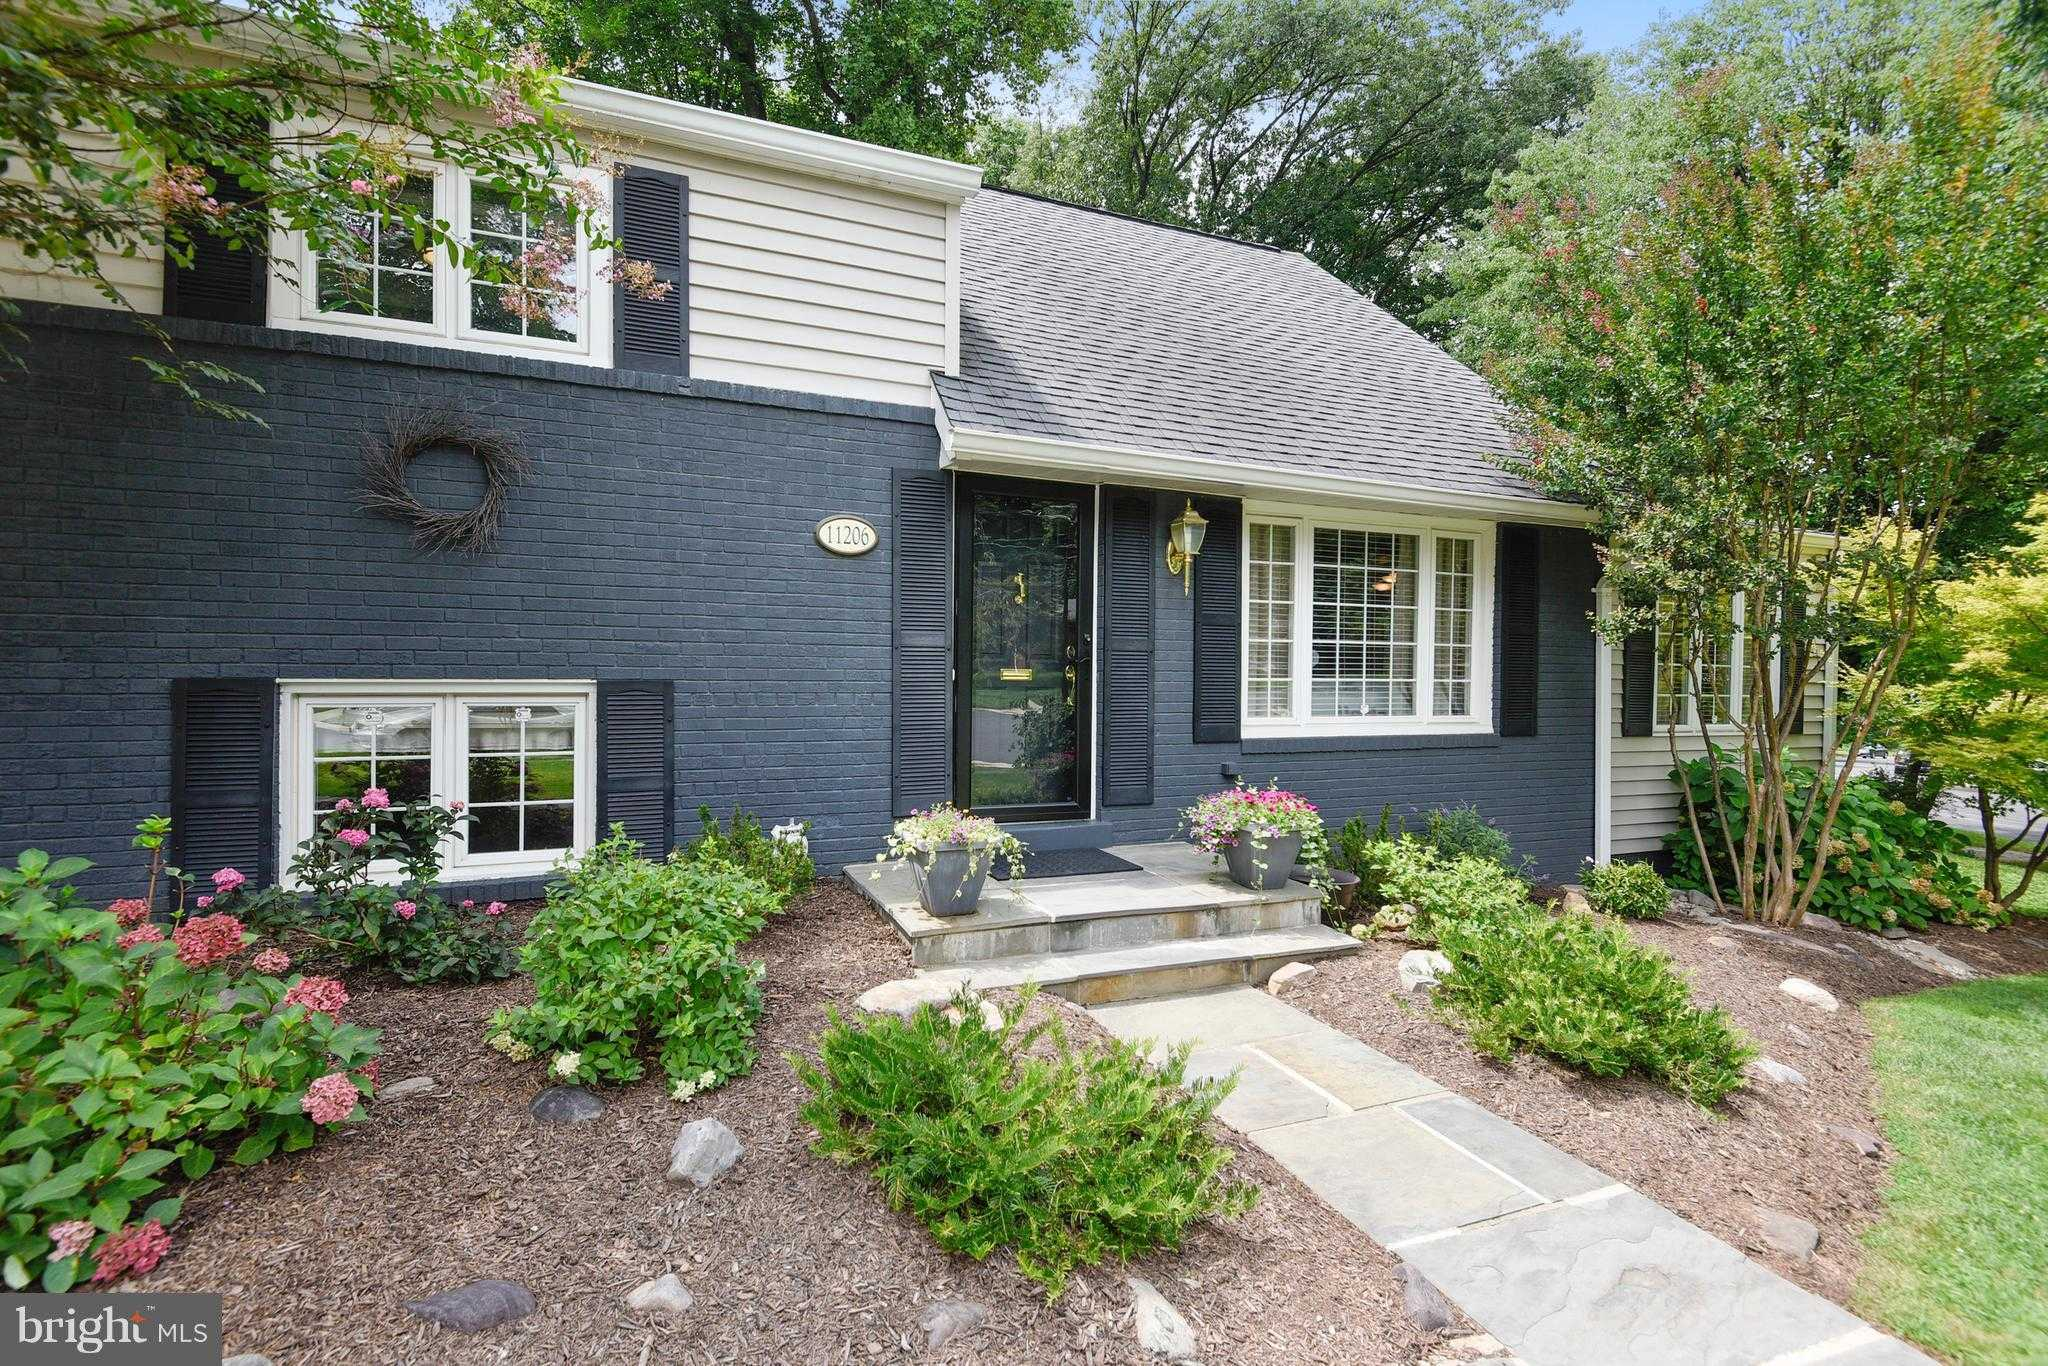 11206 MITSCHER STREET, KENSINGTON, MD, 20895 $599,000 Active Open House  Just Listed